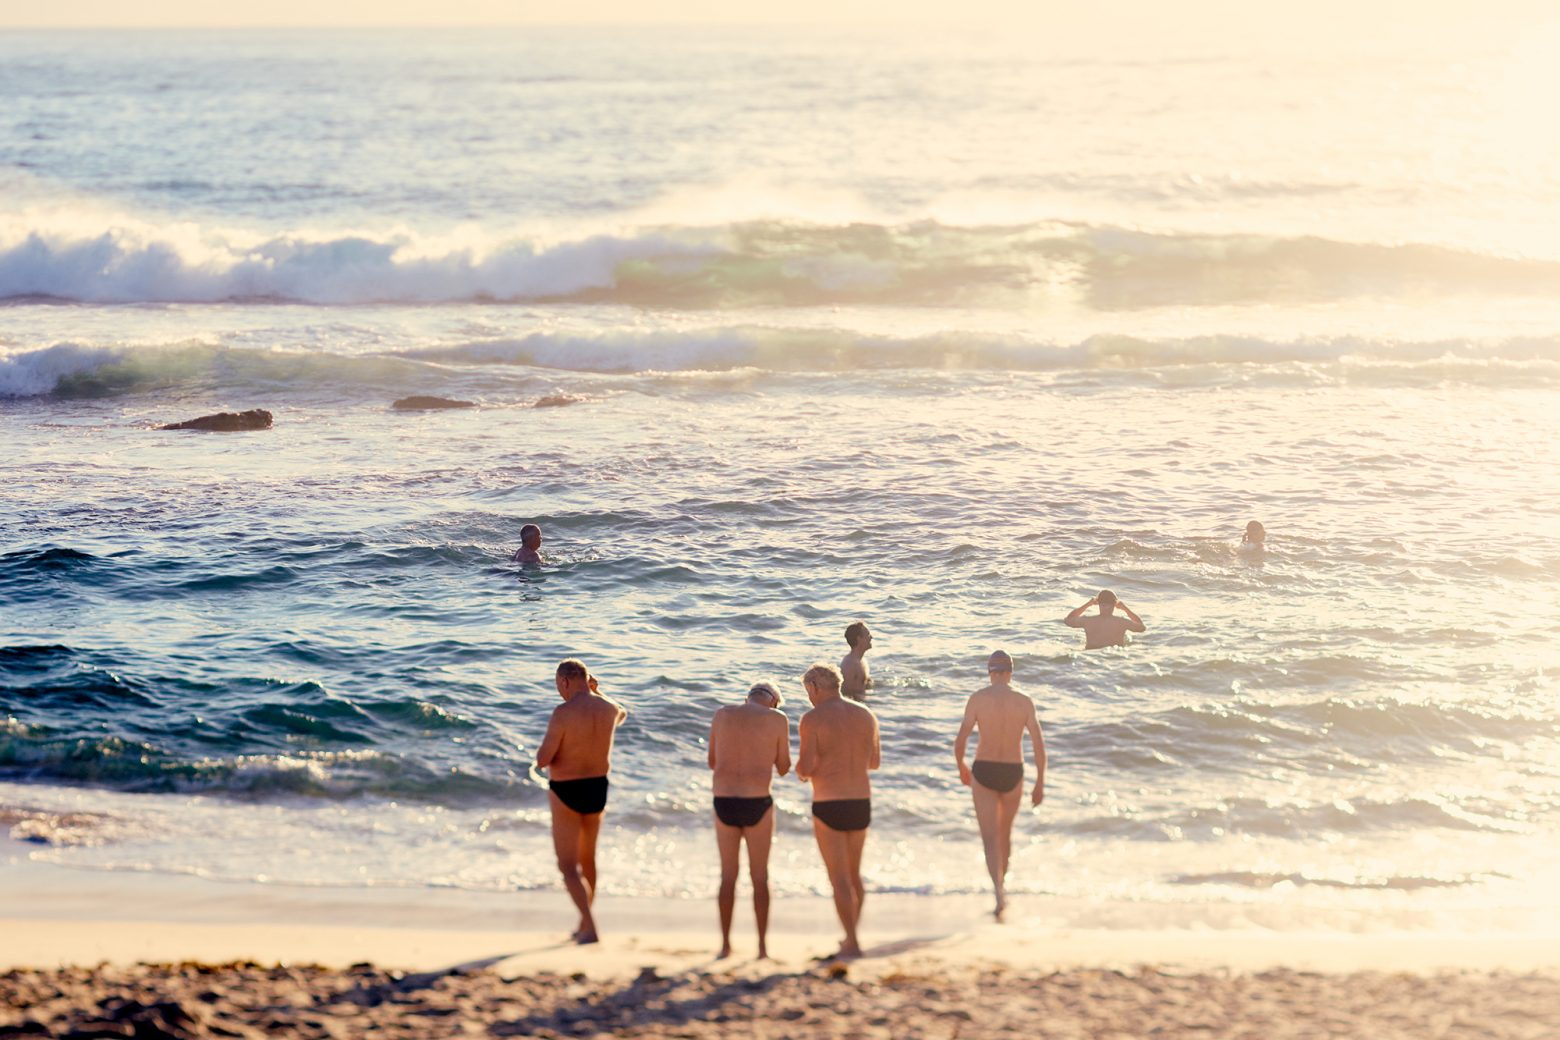 The old boiz going for a swim at the Bogey hole, Bronte